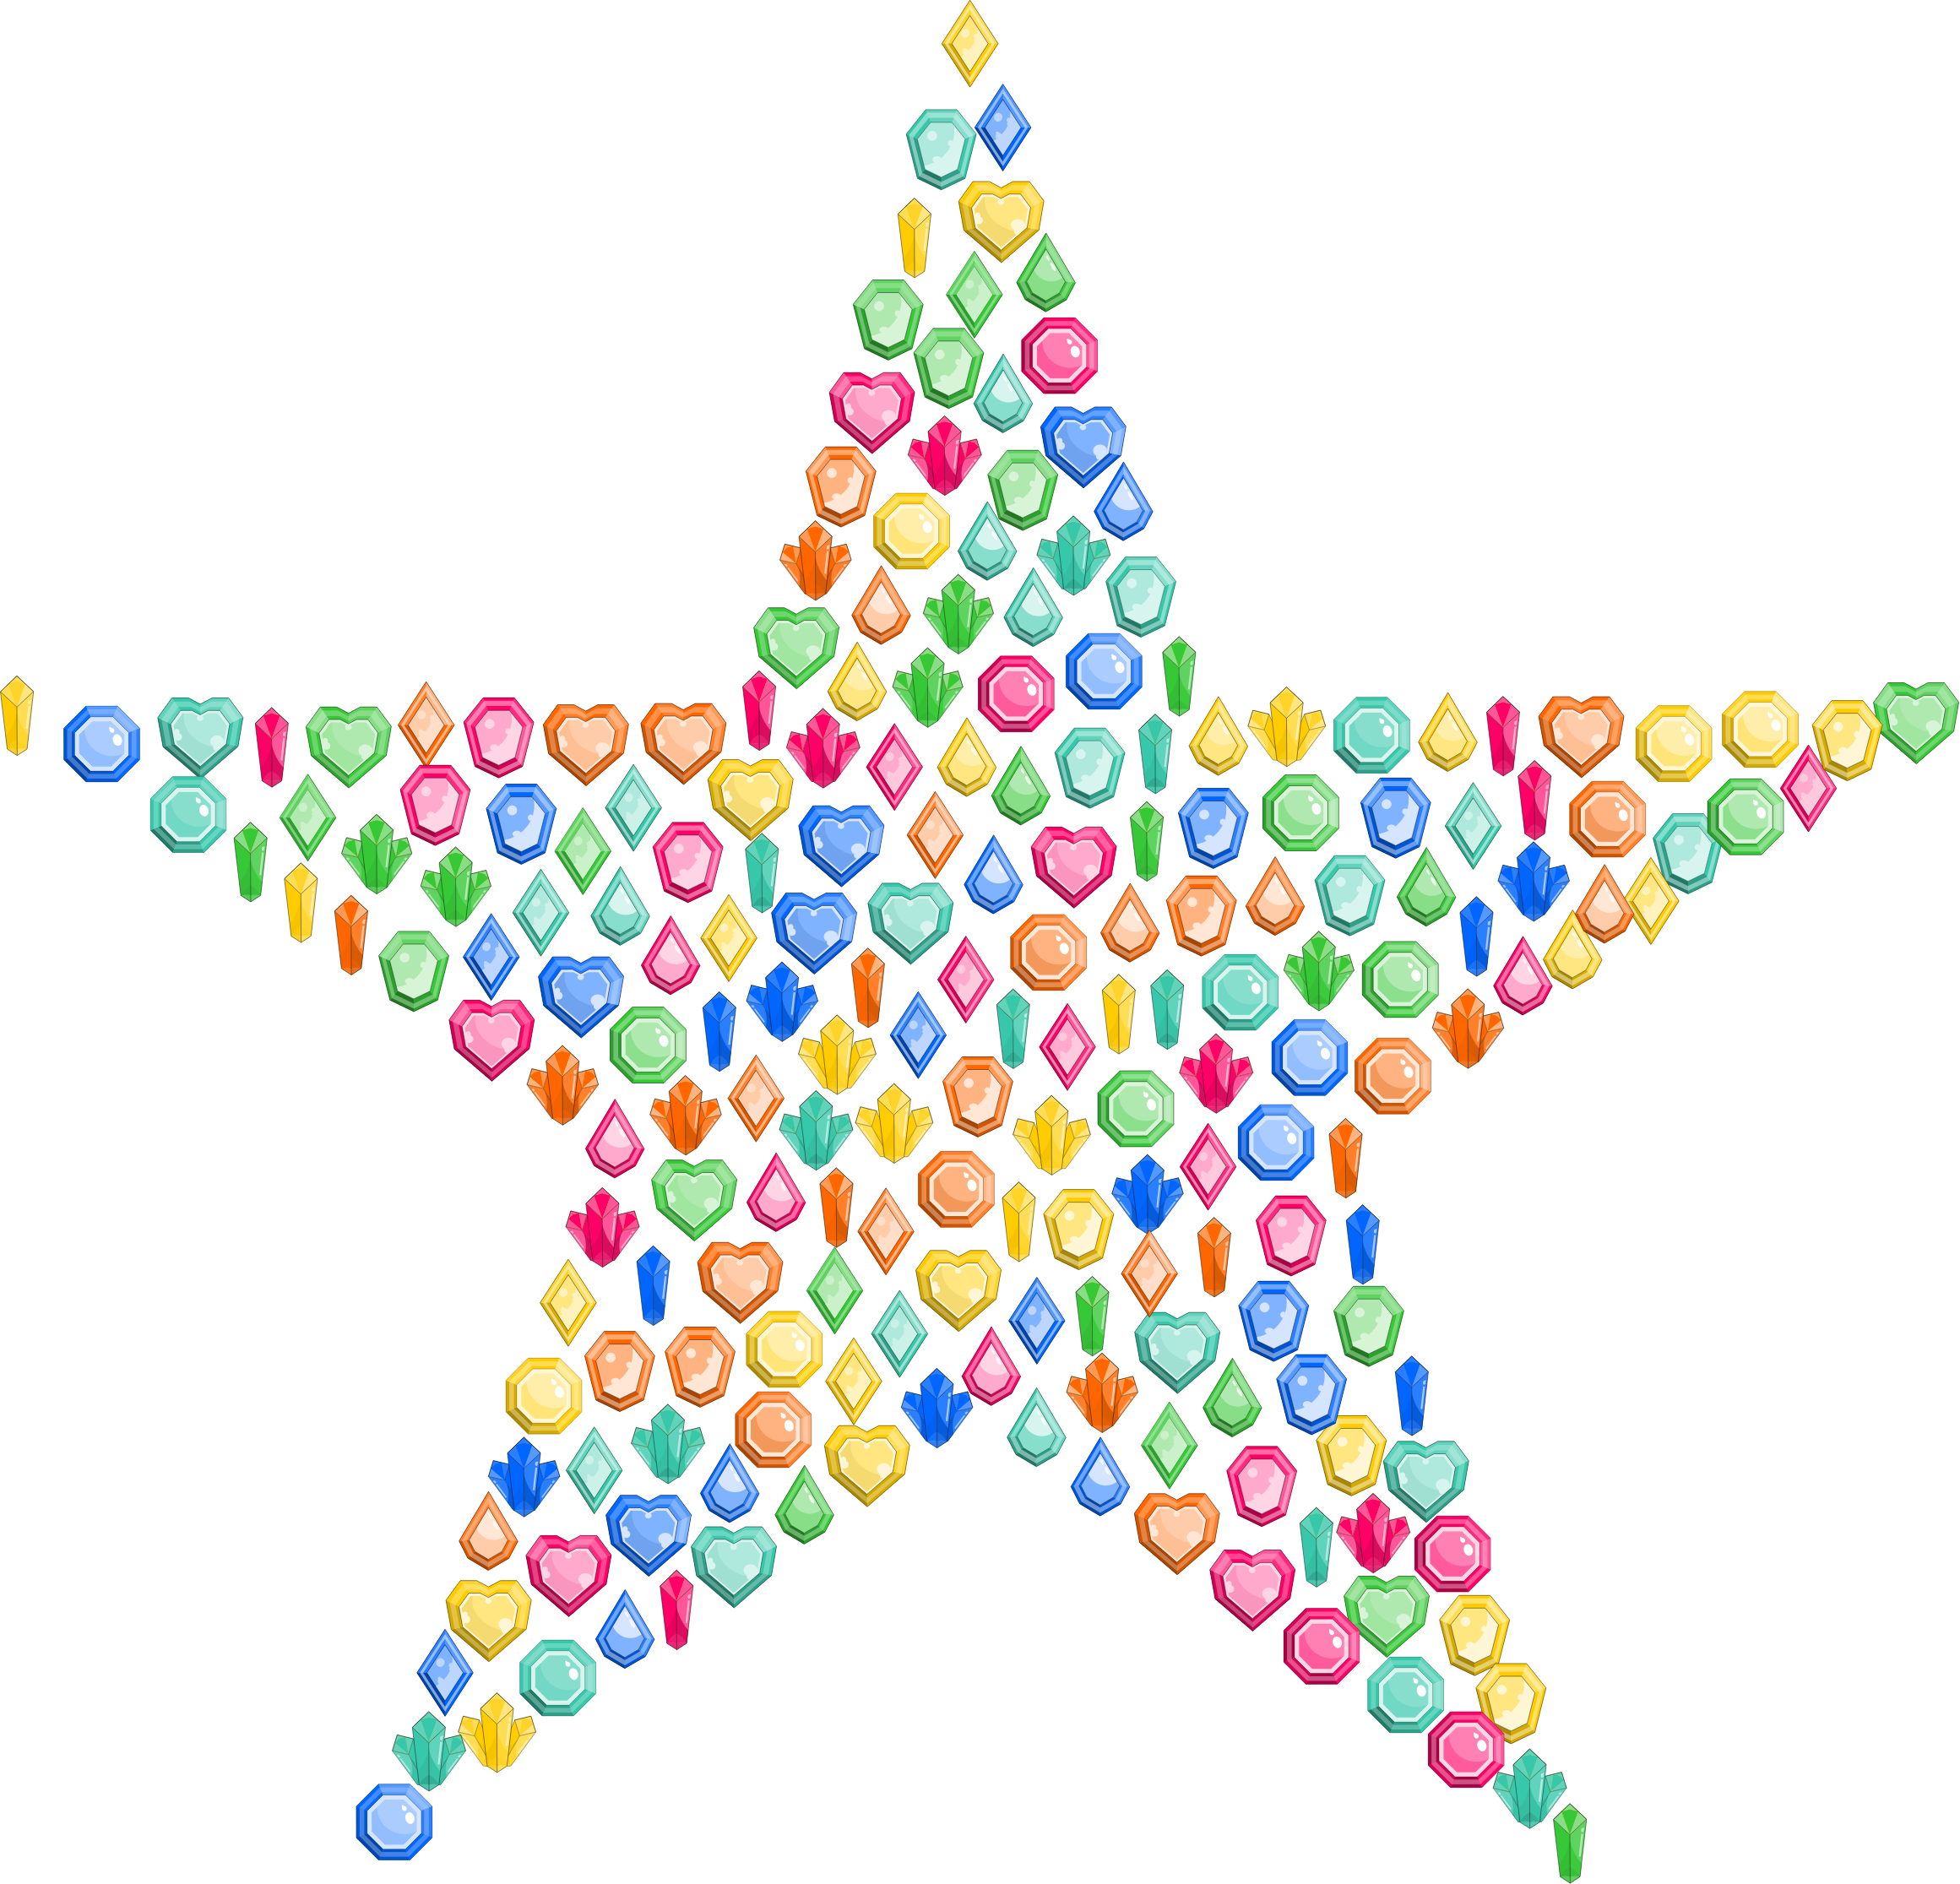 Star gem clipart black and white stock Clipart - Colorful Gems Star black and white stock